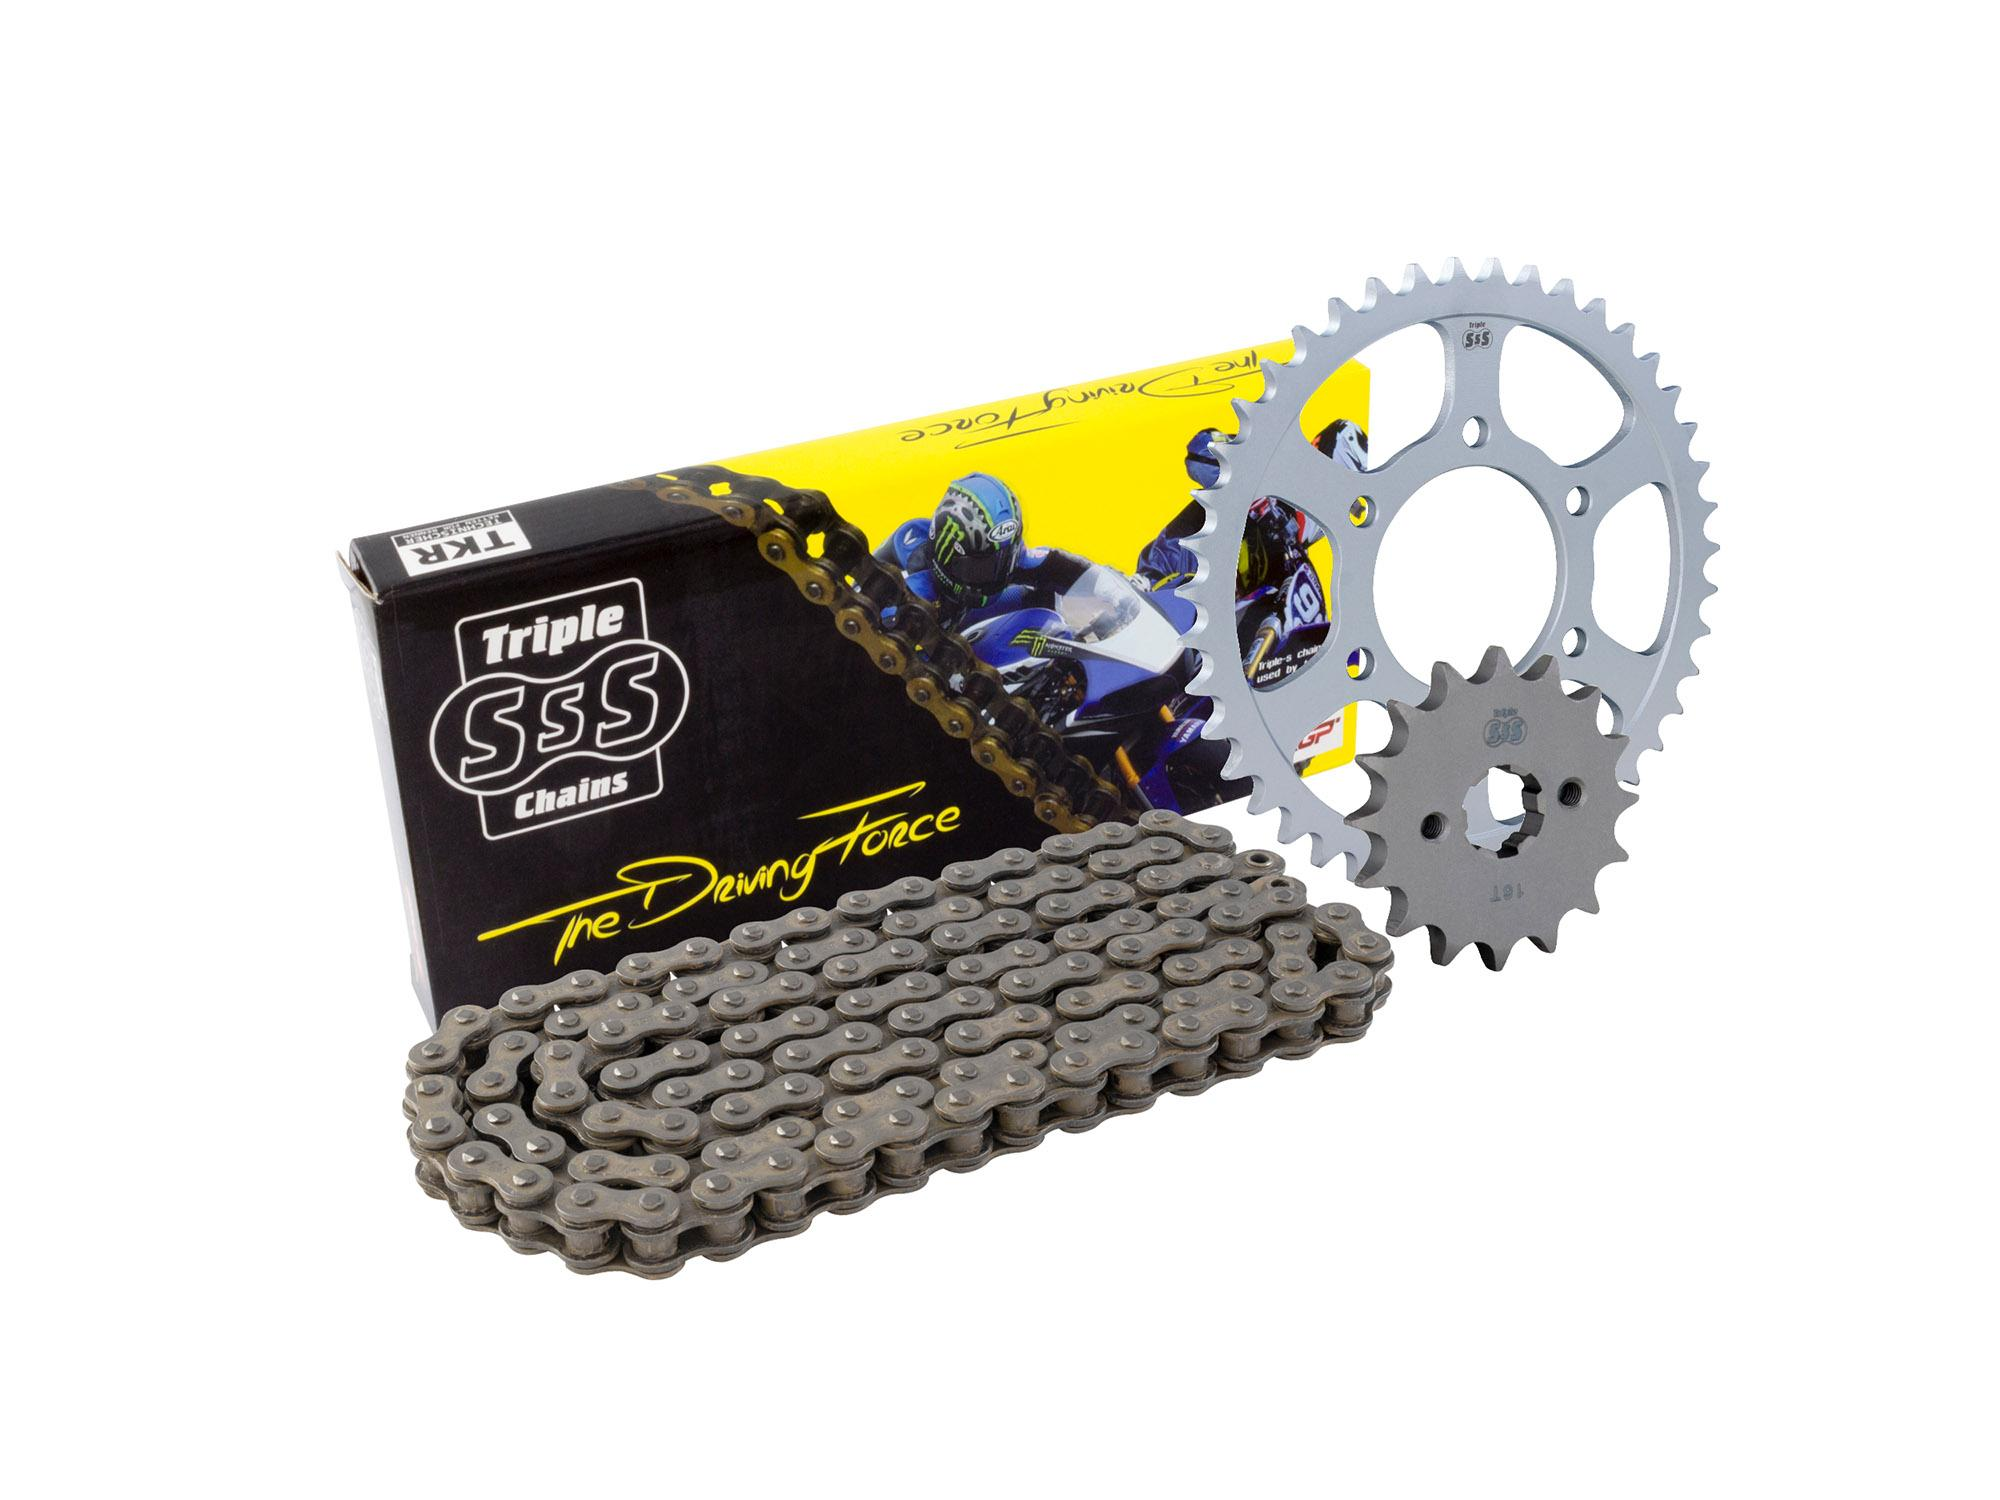 Aprilia 125 Tuono 03-07 Chain & Sprocket Kit: 14T Front, 40T Rear, HD O-Ring Black Chain 520H 104Link